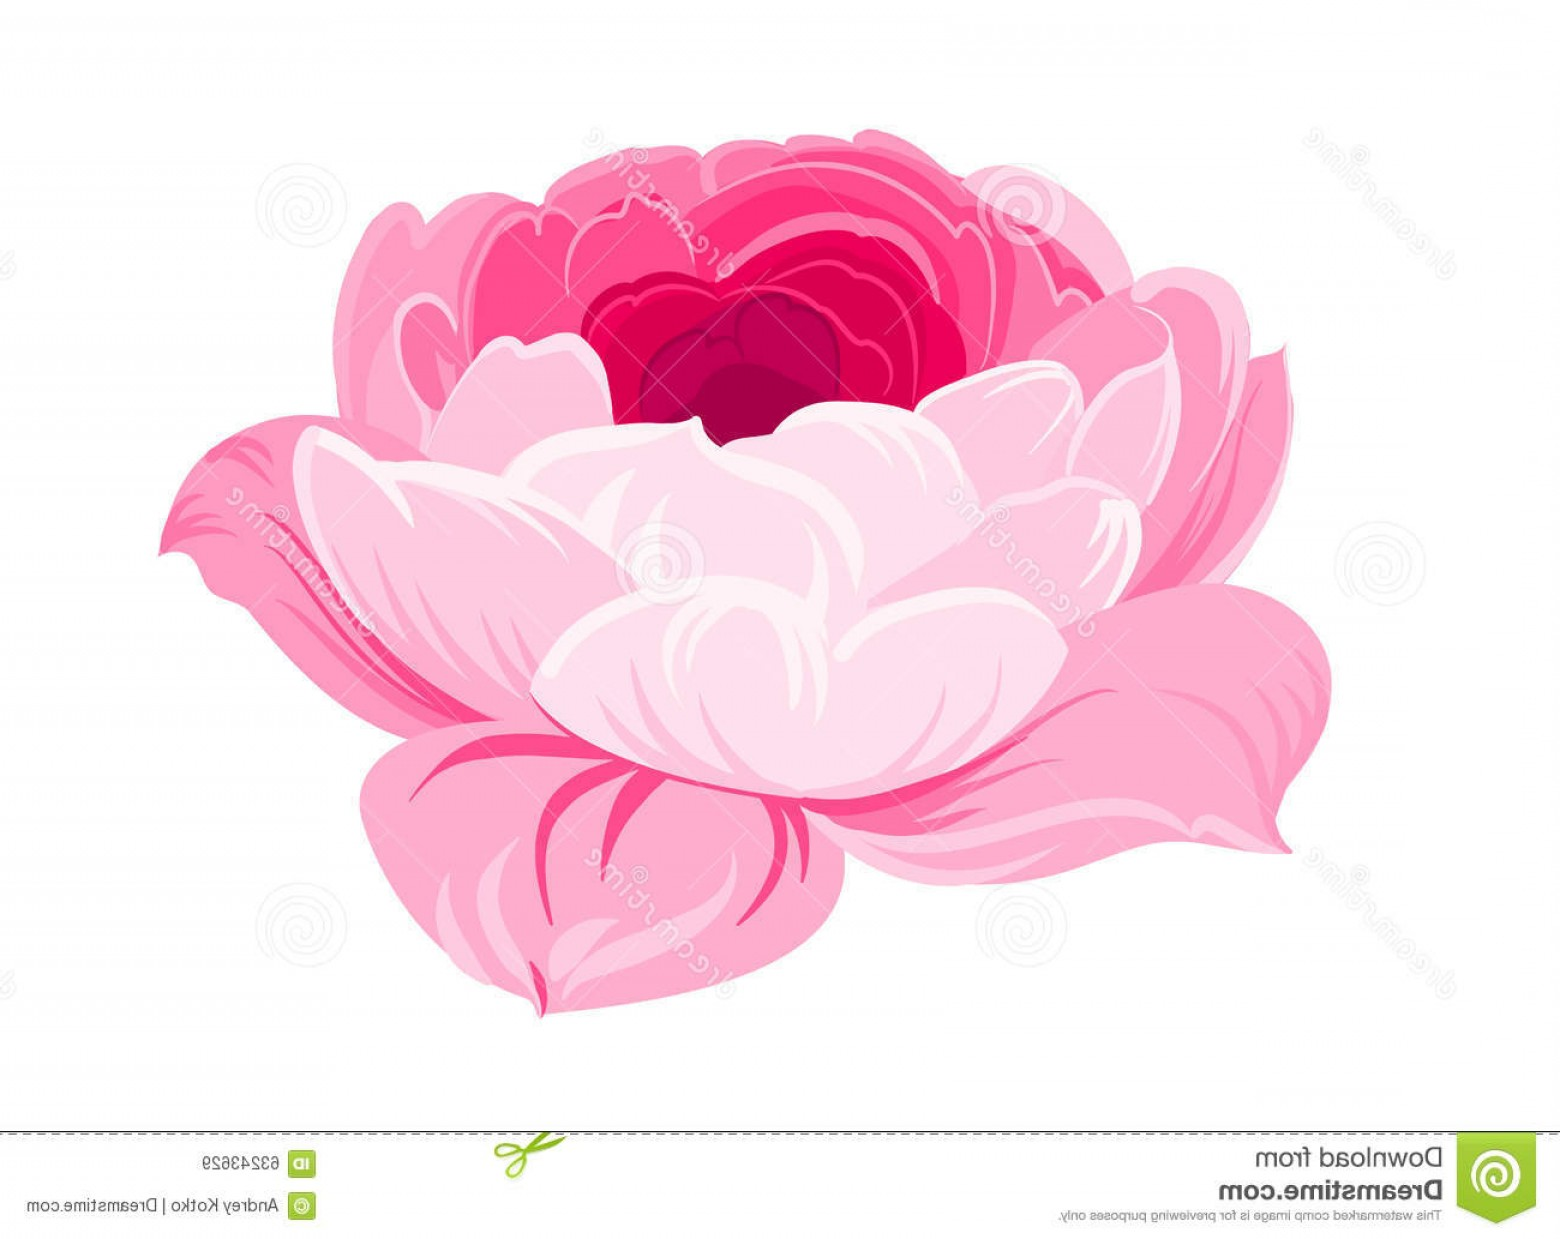 Vector Mop Flower: Stock Illustration Purple Rose White Background Mop Headrose Flower Against Beautiful Colored Flowers Vector Illustration Image